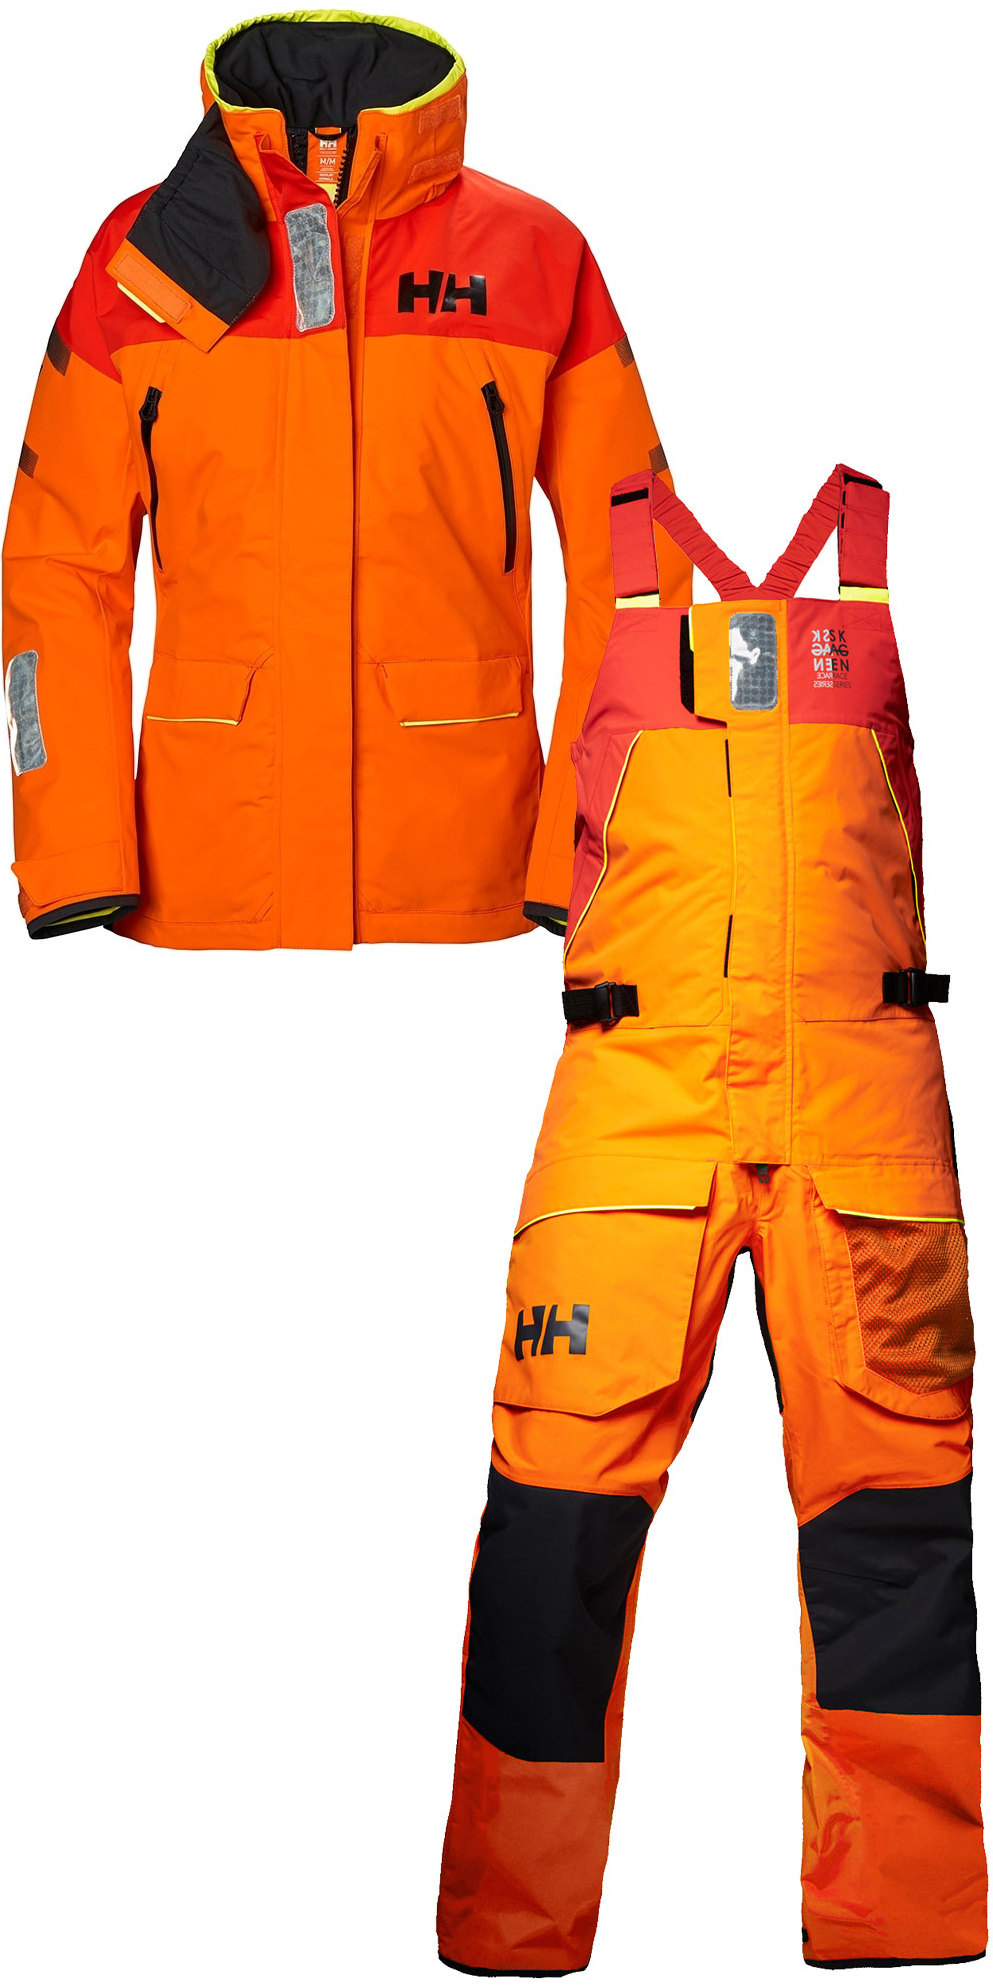 370e5f3255286 2019 Helly Hansen Womens Skagen Offshore Jacket 33920 & Trouser 33921 Combi  Set Blaze Orange | Wetsuit Outlet